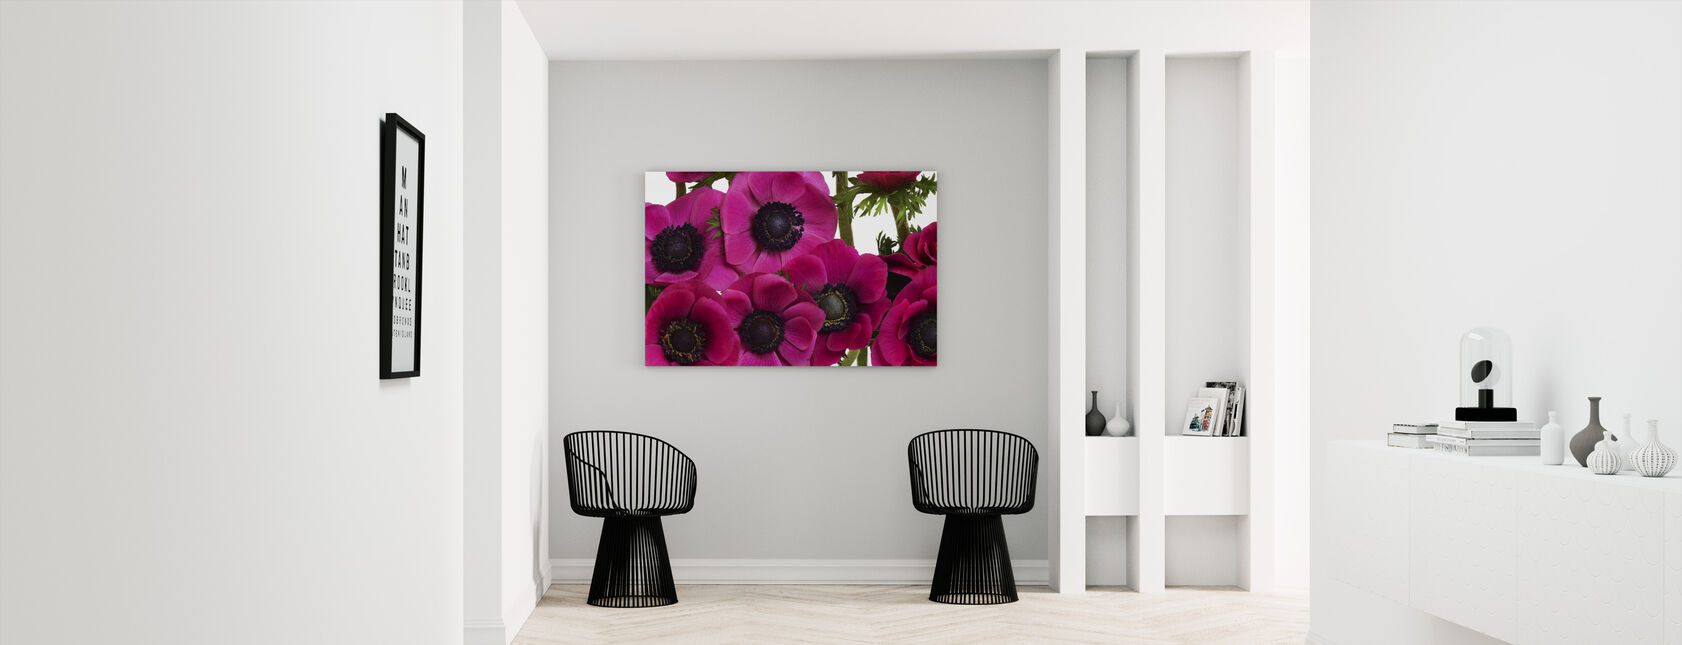 Panoramic Flowers - Pink - Canvas print - Hallway